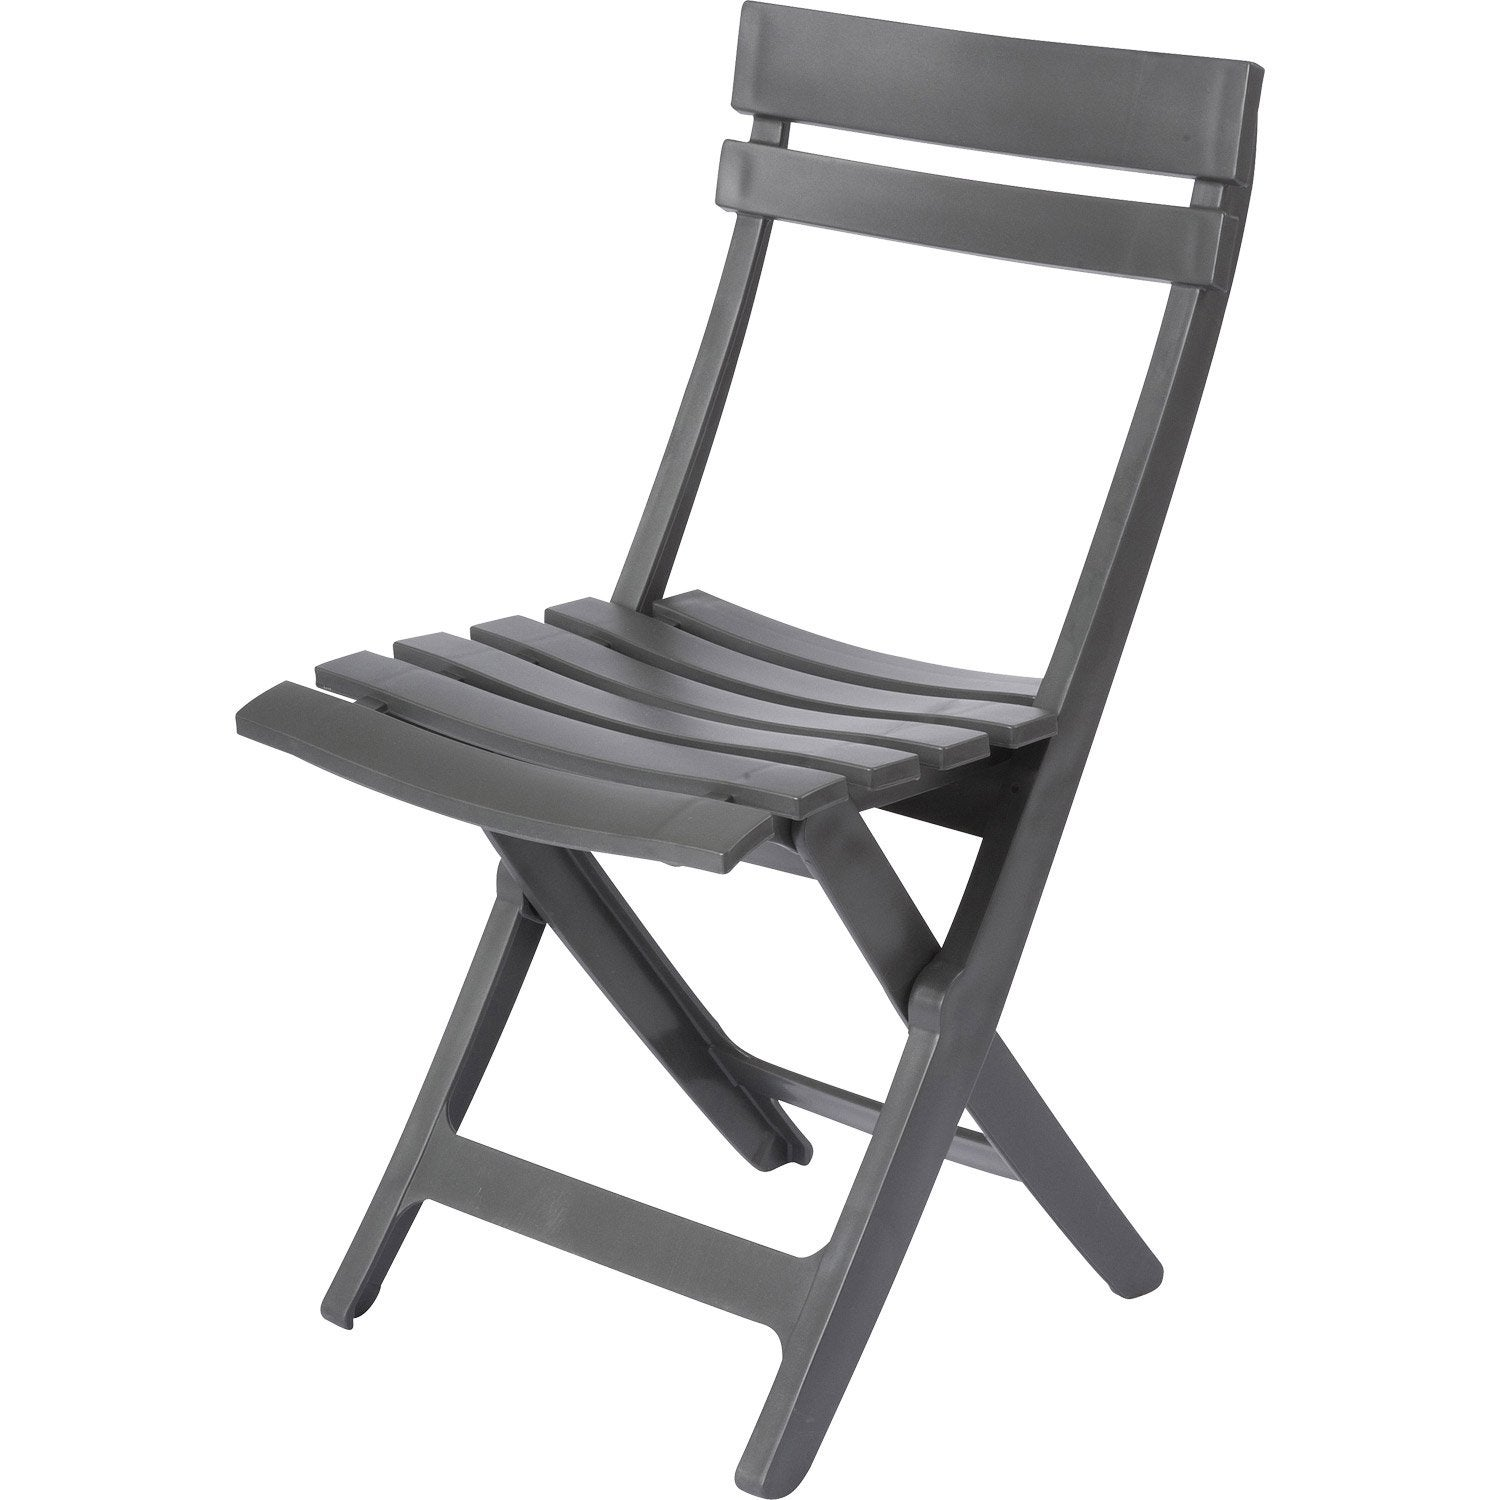 Chaise de jardin en r sine miami anthracite leroy merlin for Chaise longue leroy merlin